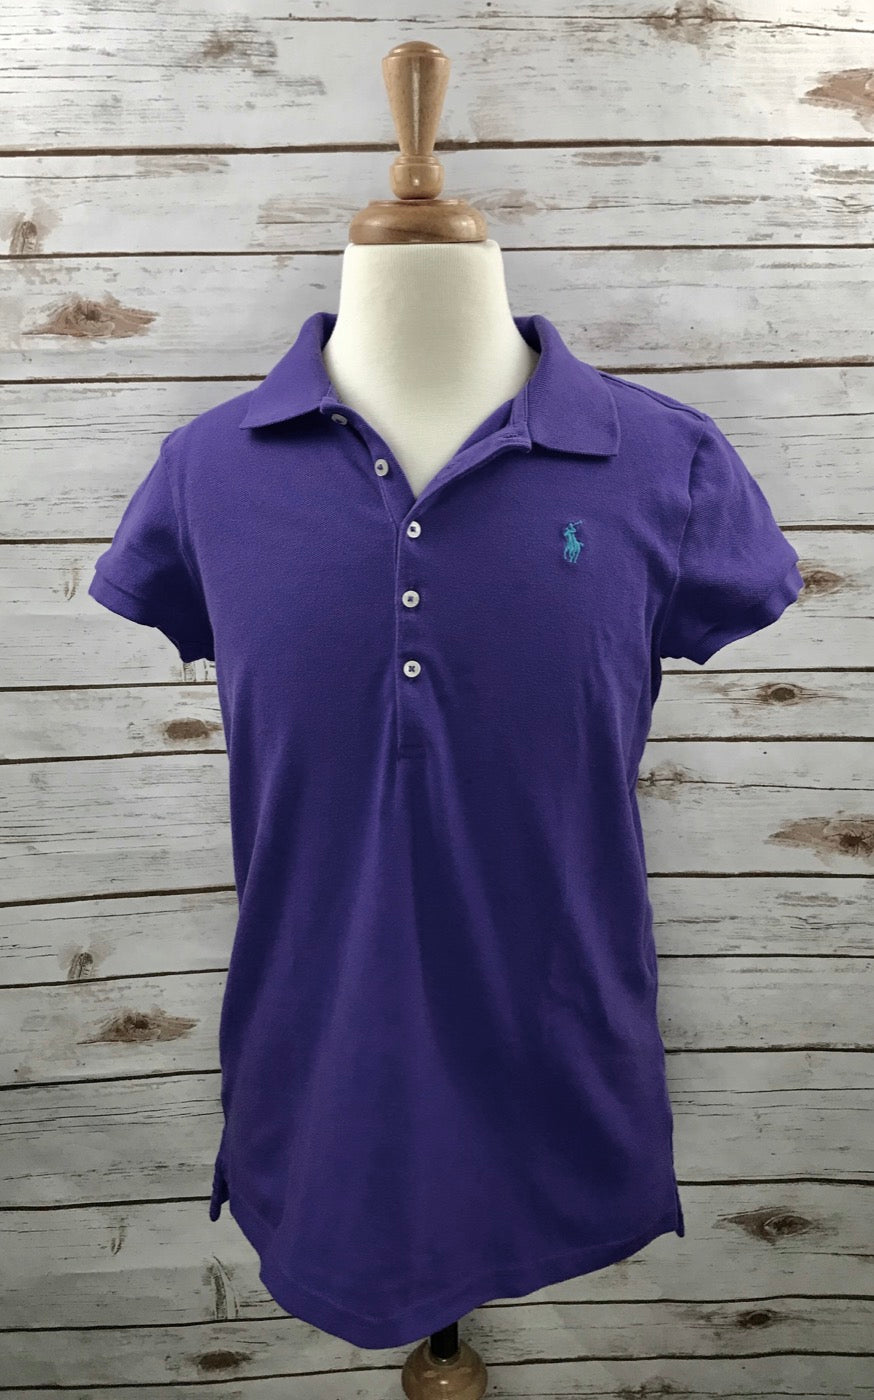 Polo Ralph Lauren Kids Polo in Purple - Front View